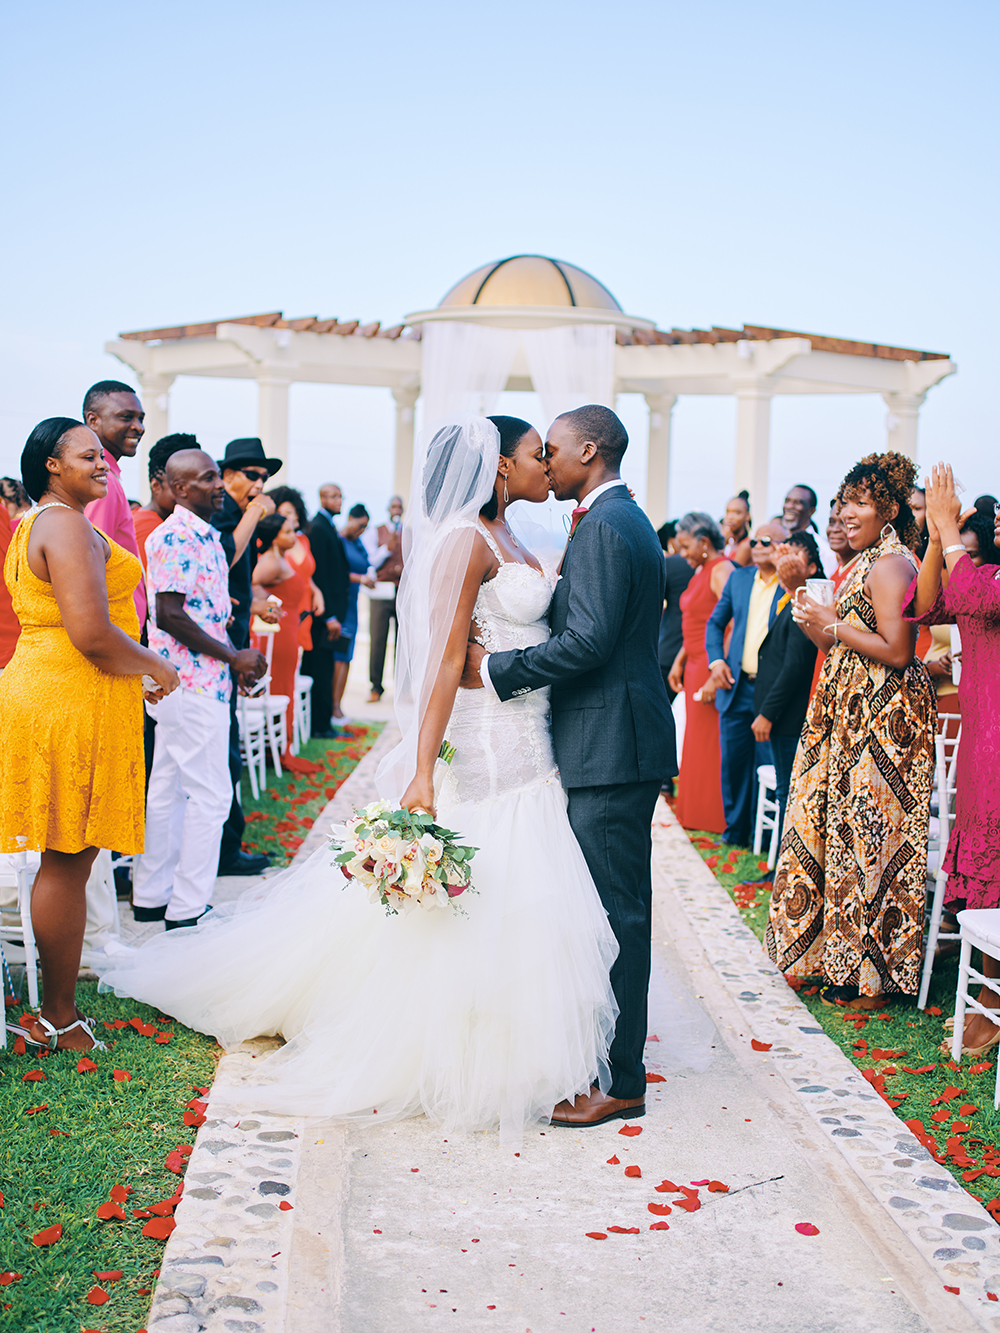 wedding ceremony - bride - groom - outdoors - Jamaica